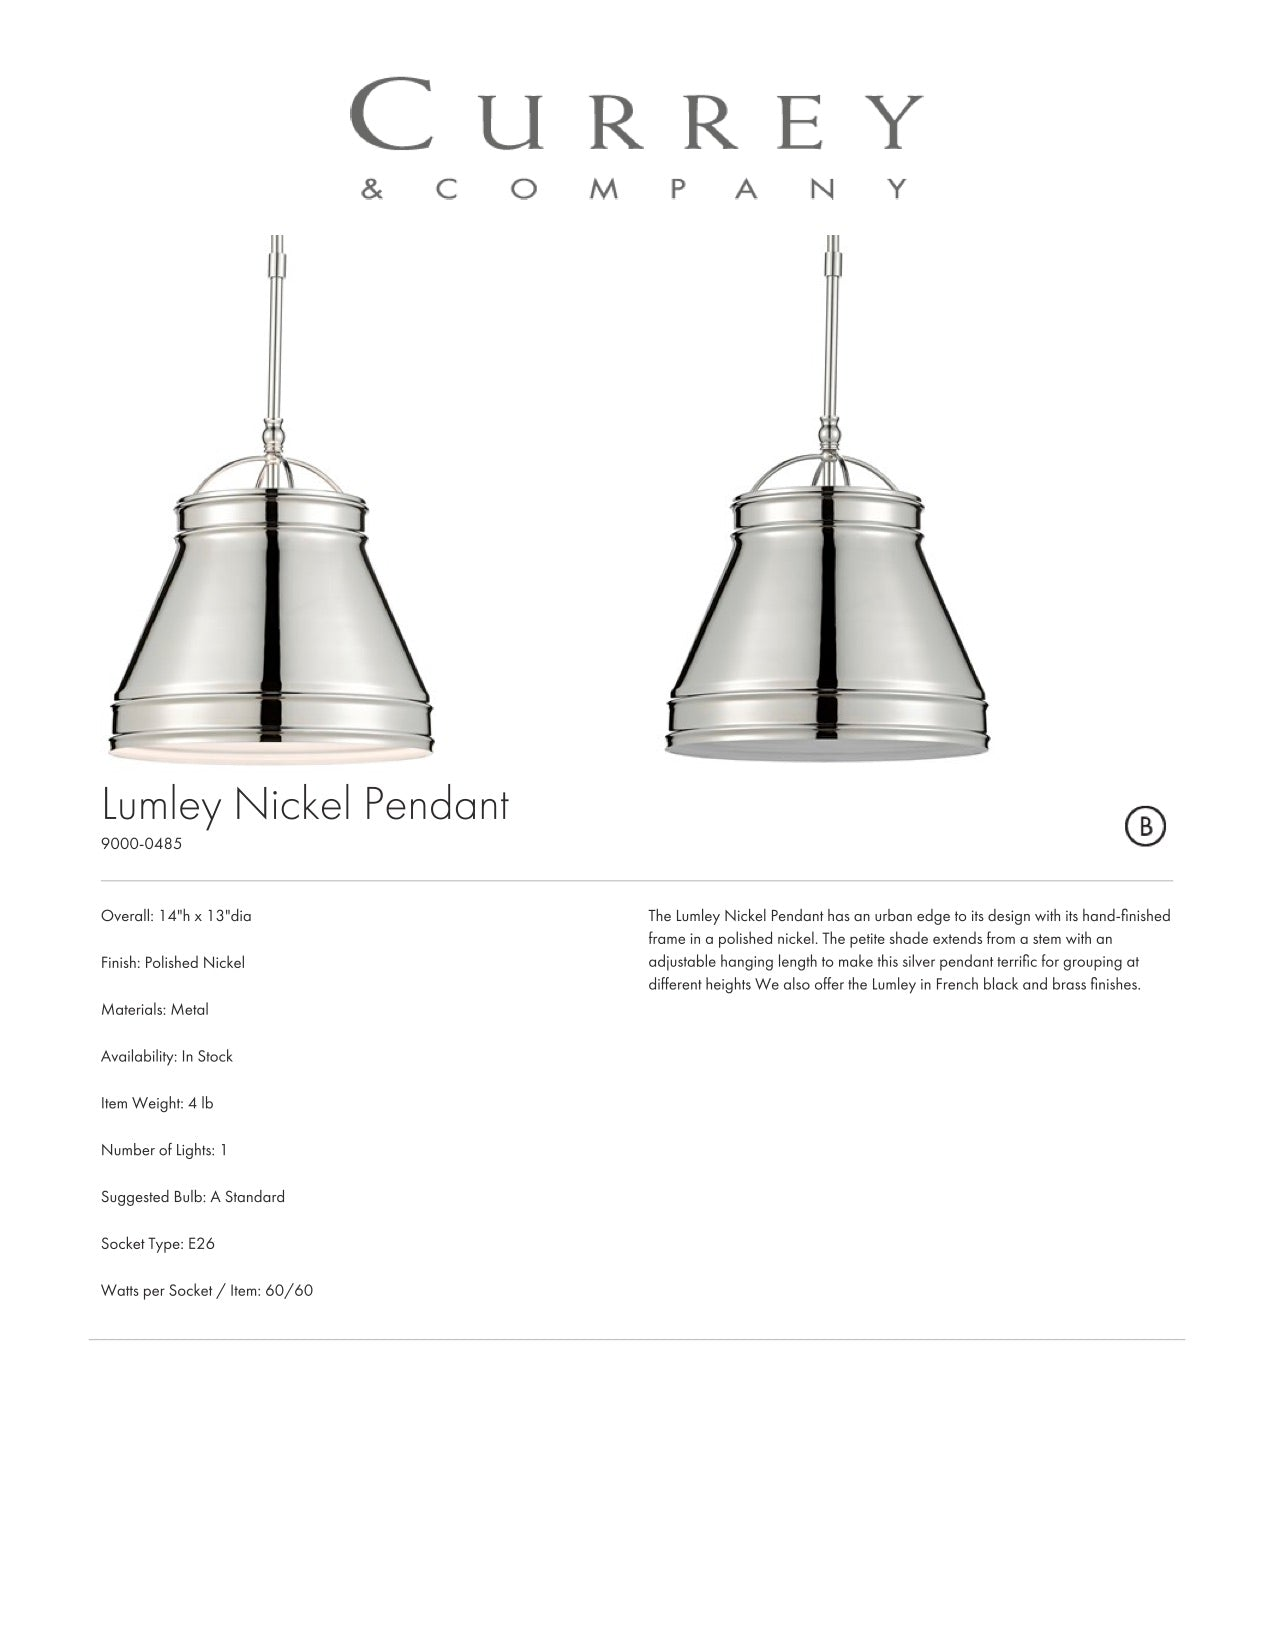 Currey & Company Lumley Nickel Pendant Tearsheet